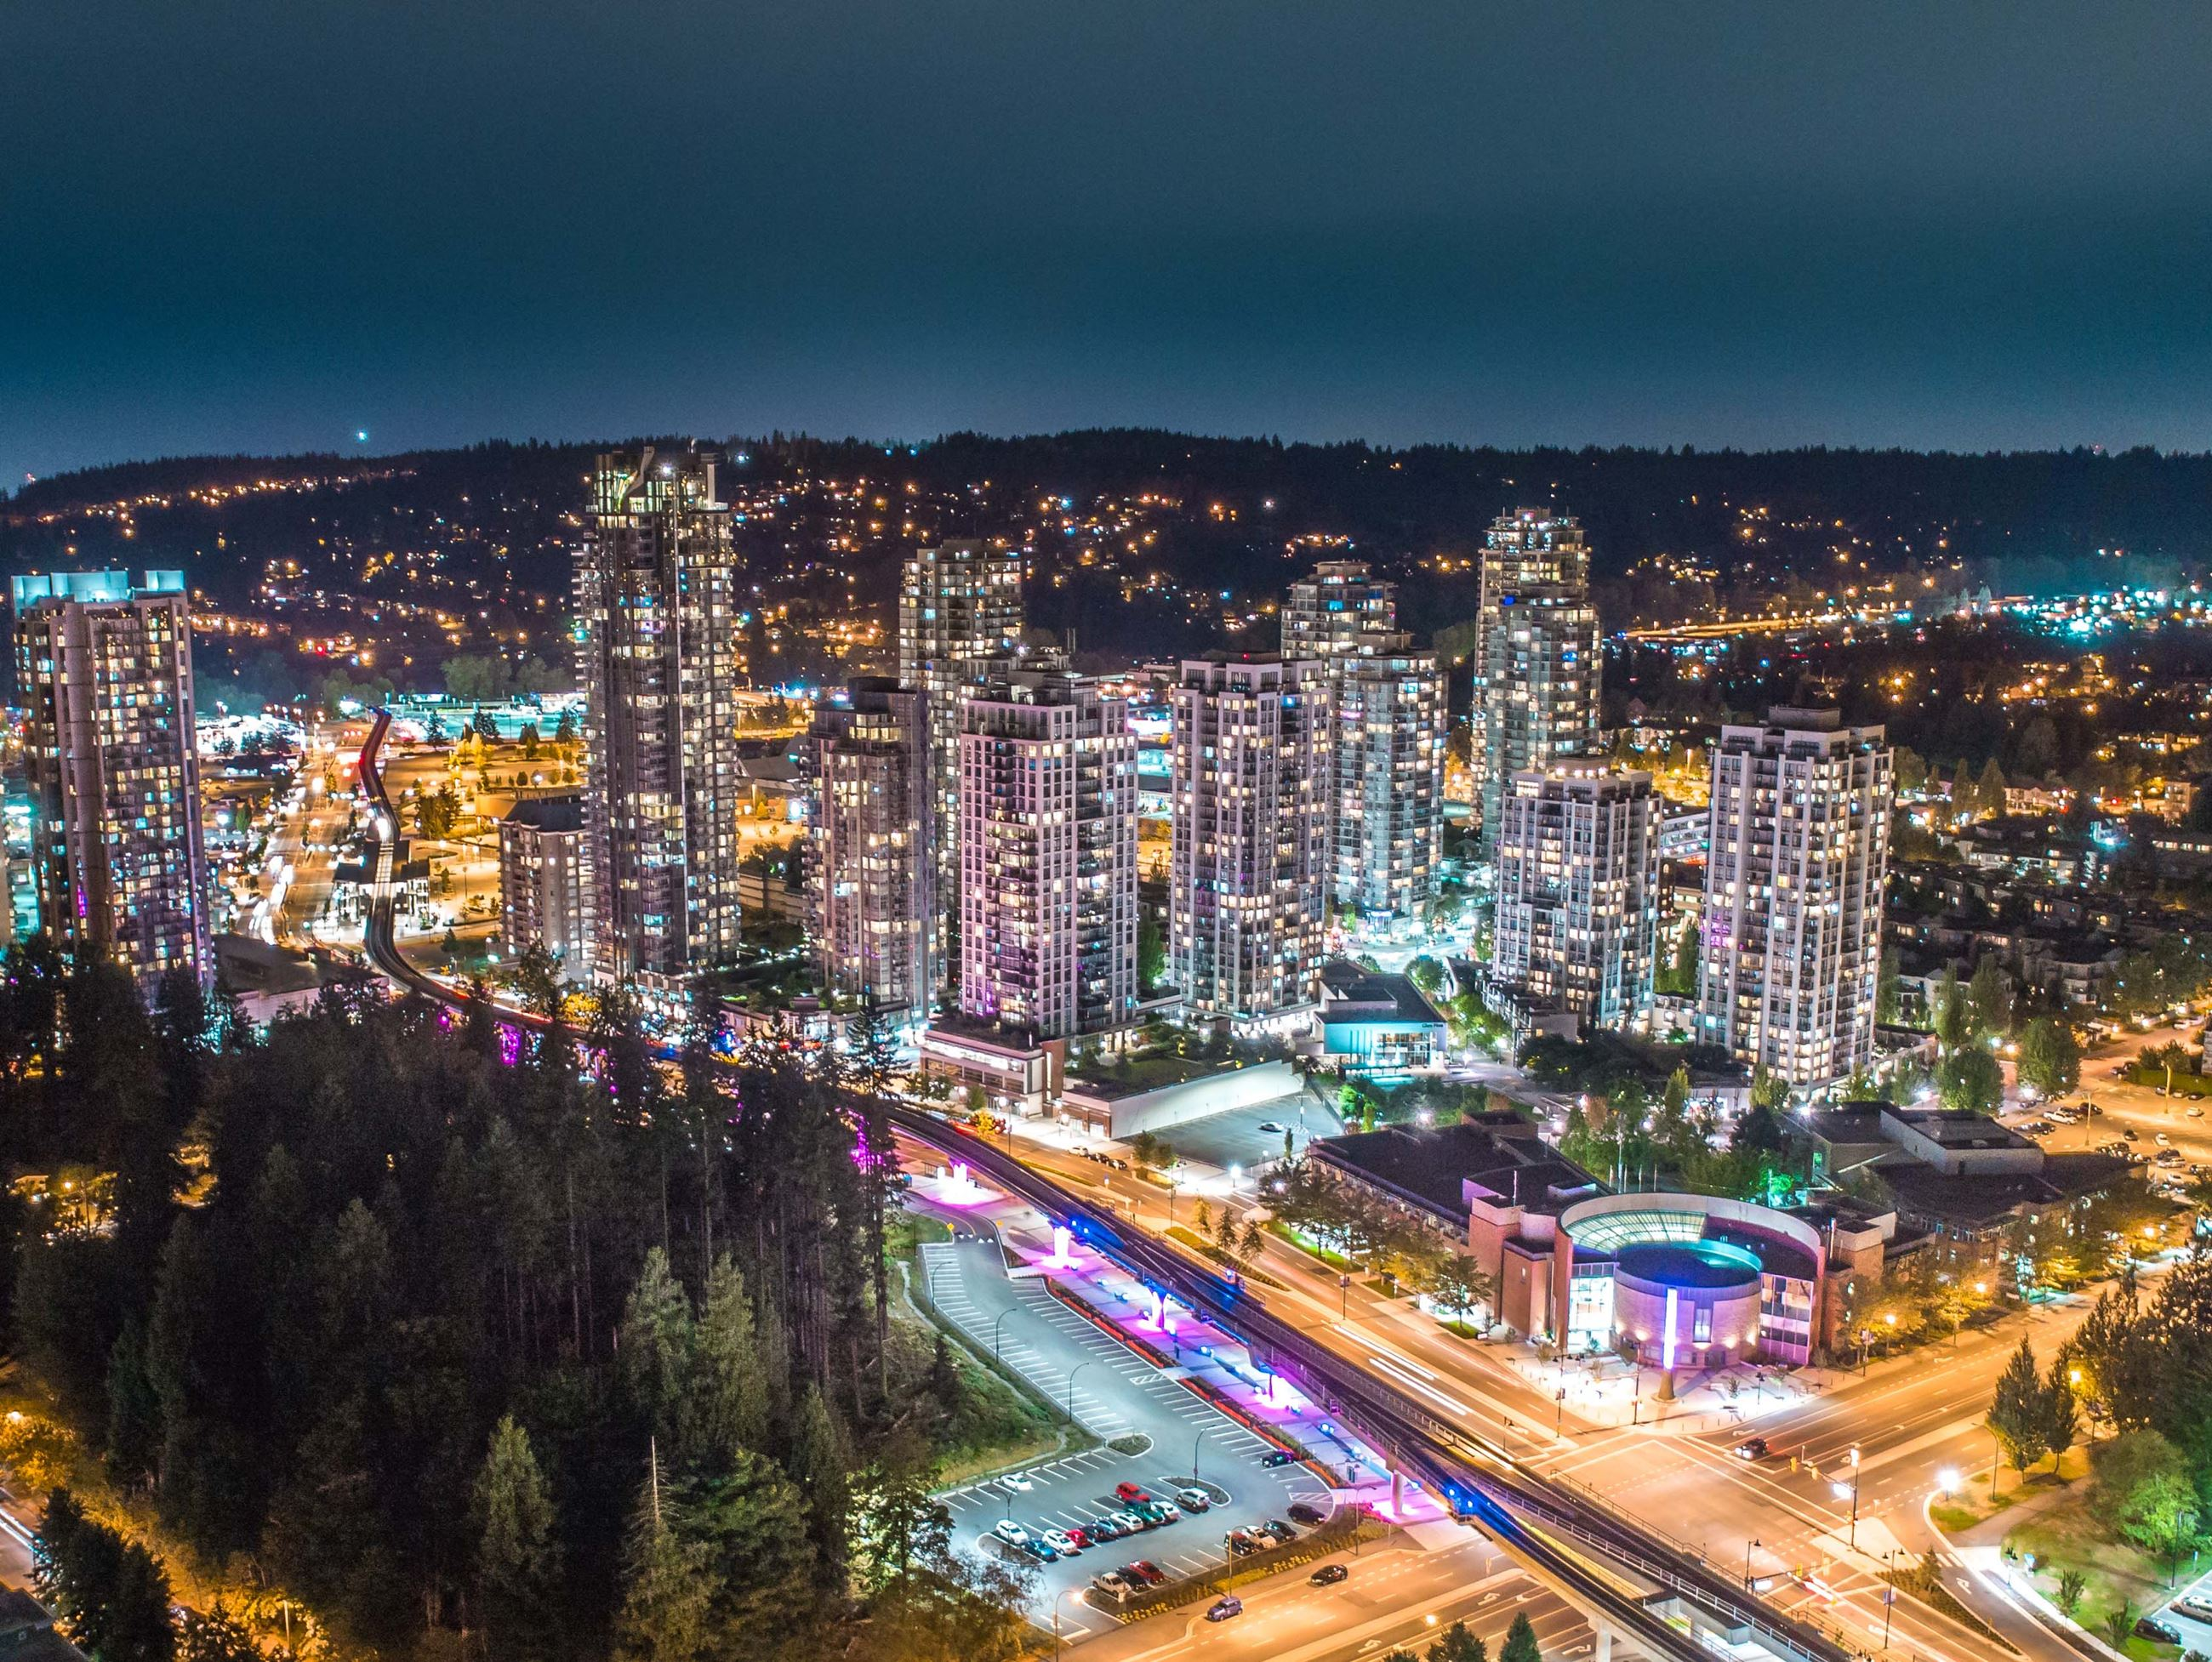 Aerial image of Coquitlam's City Centre at night